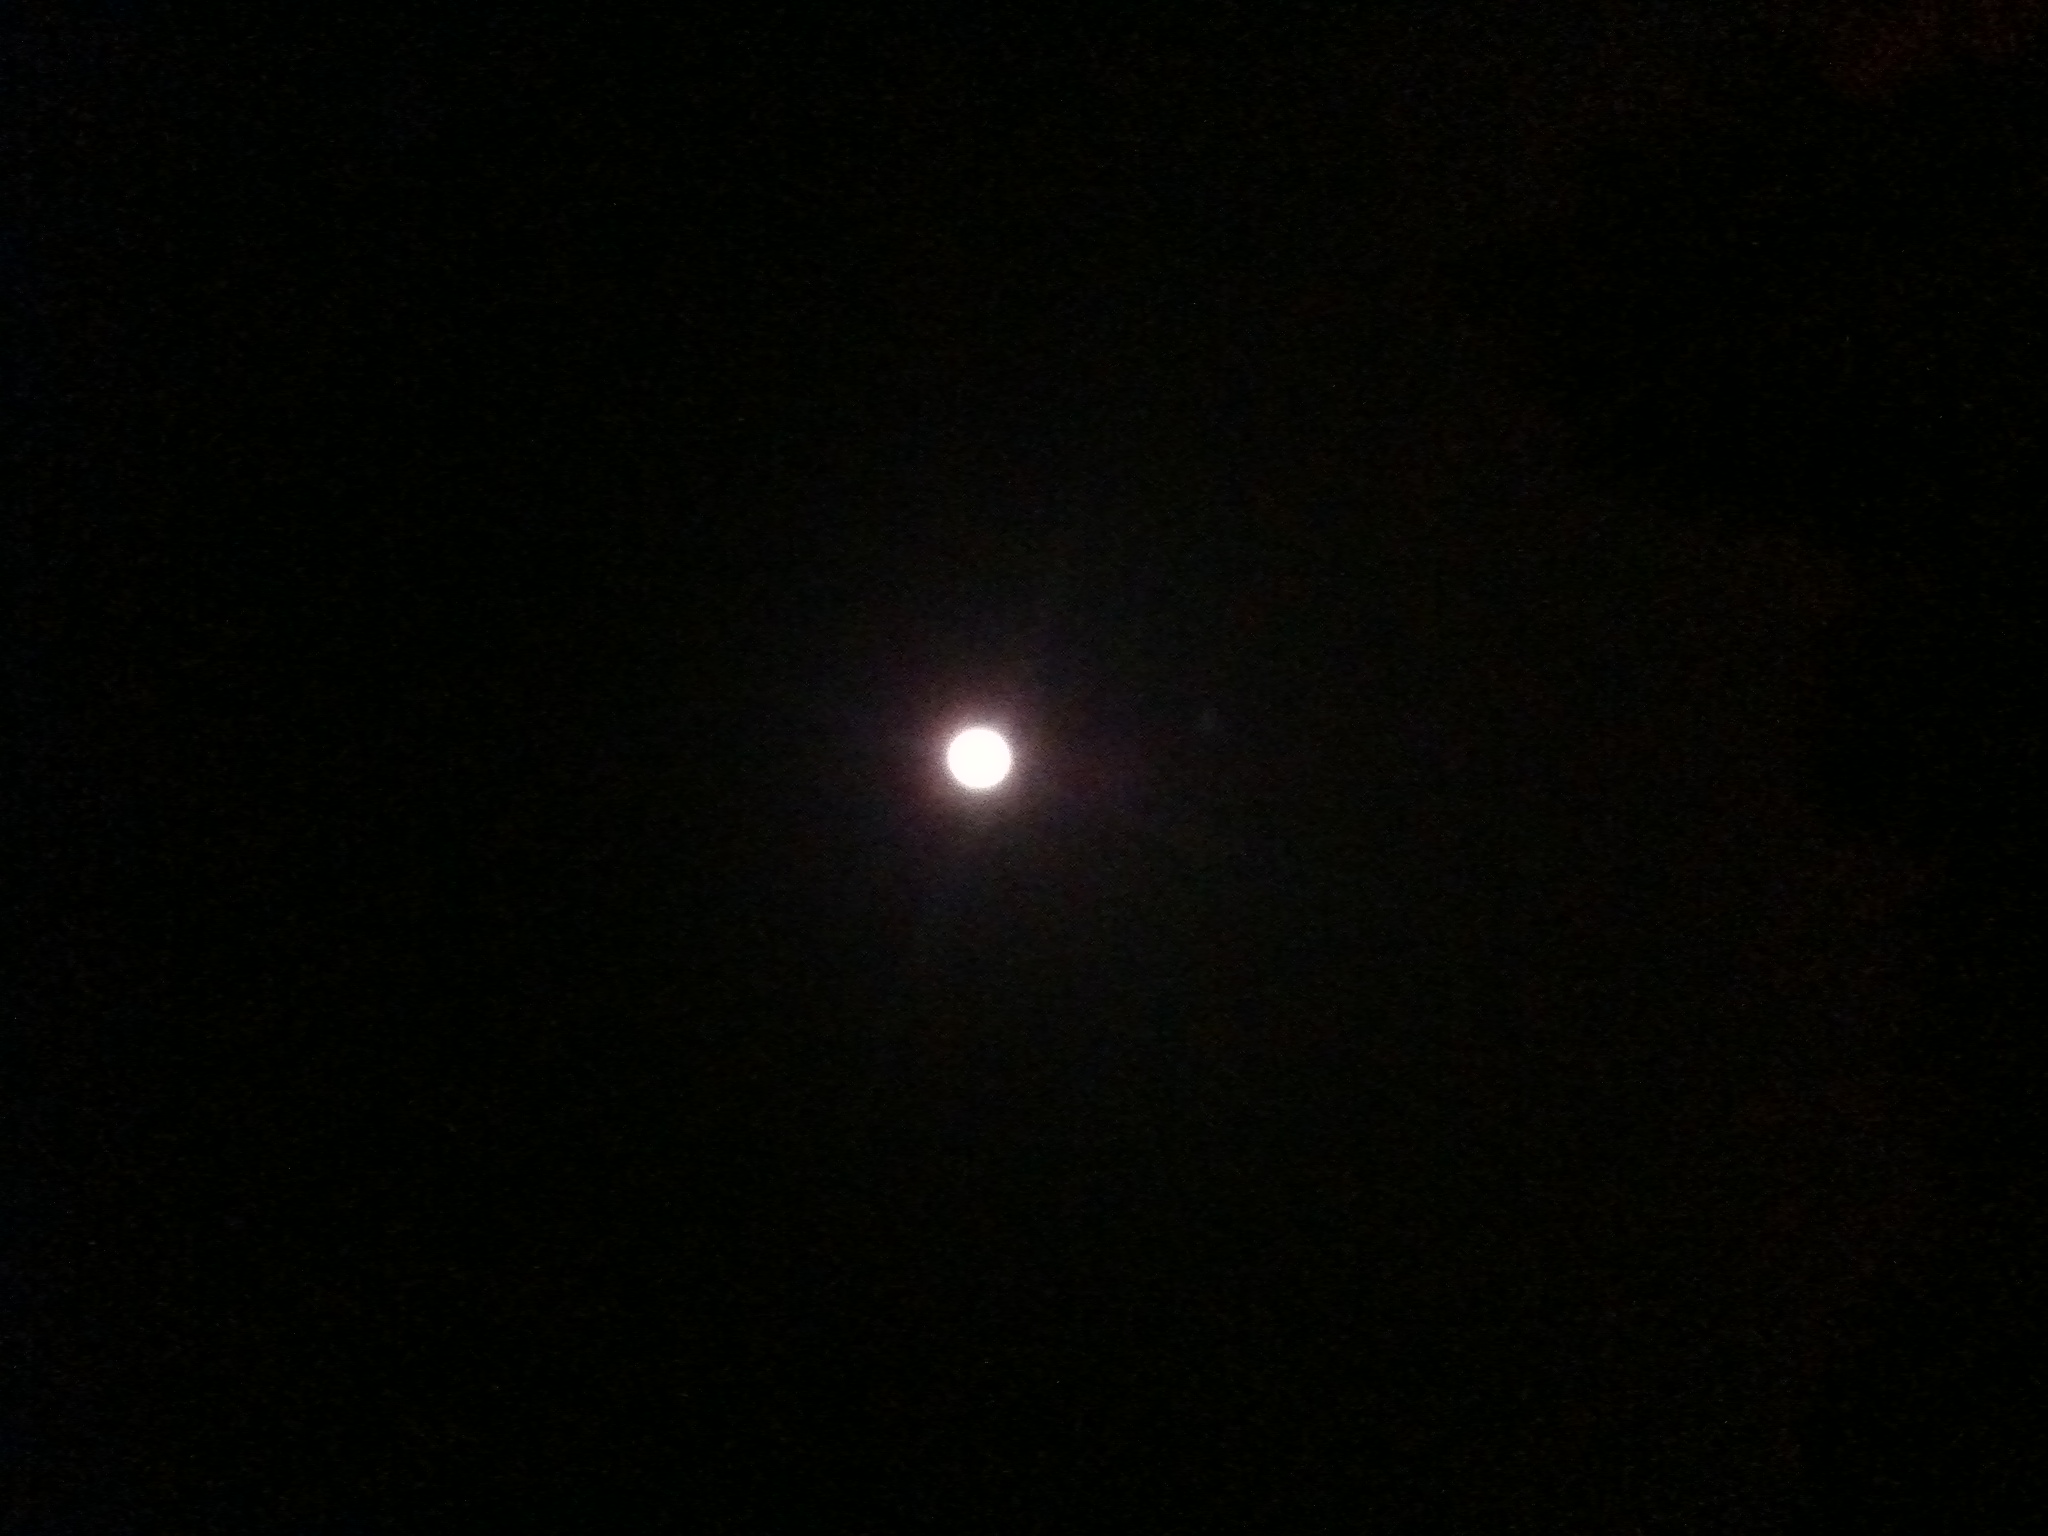 photo So I made it up by trying to capture the image of Super Harvest Moon for ...